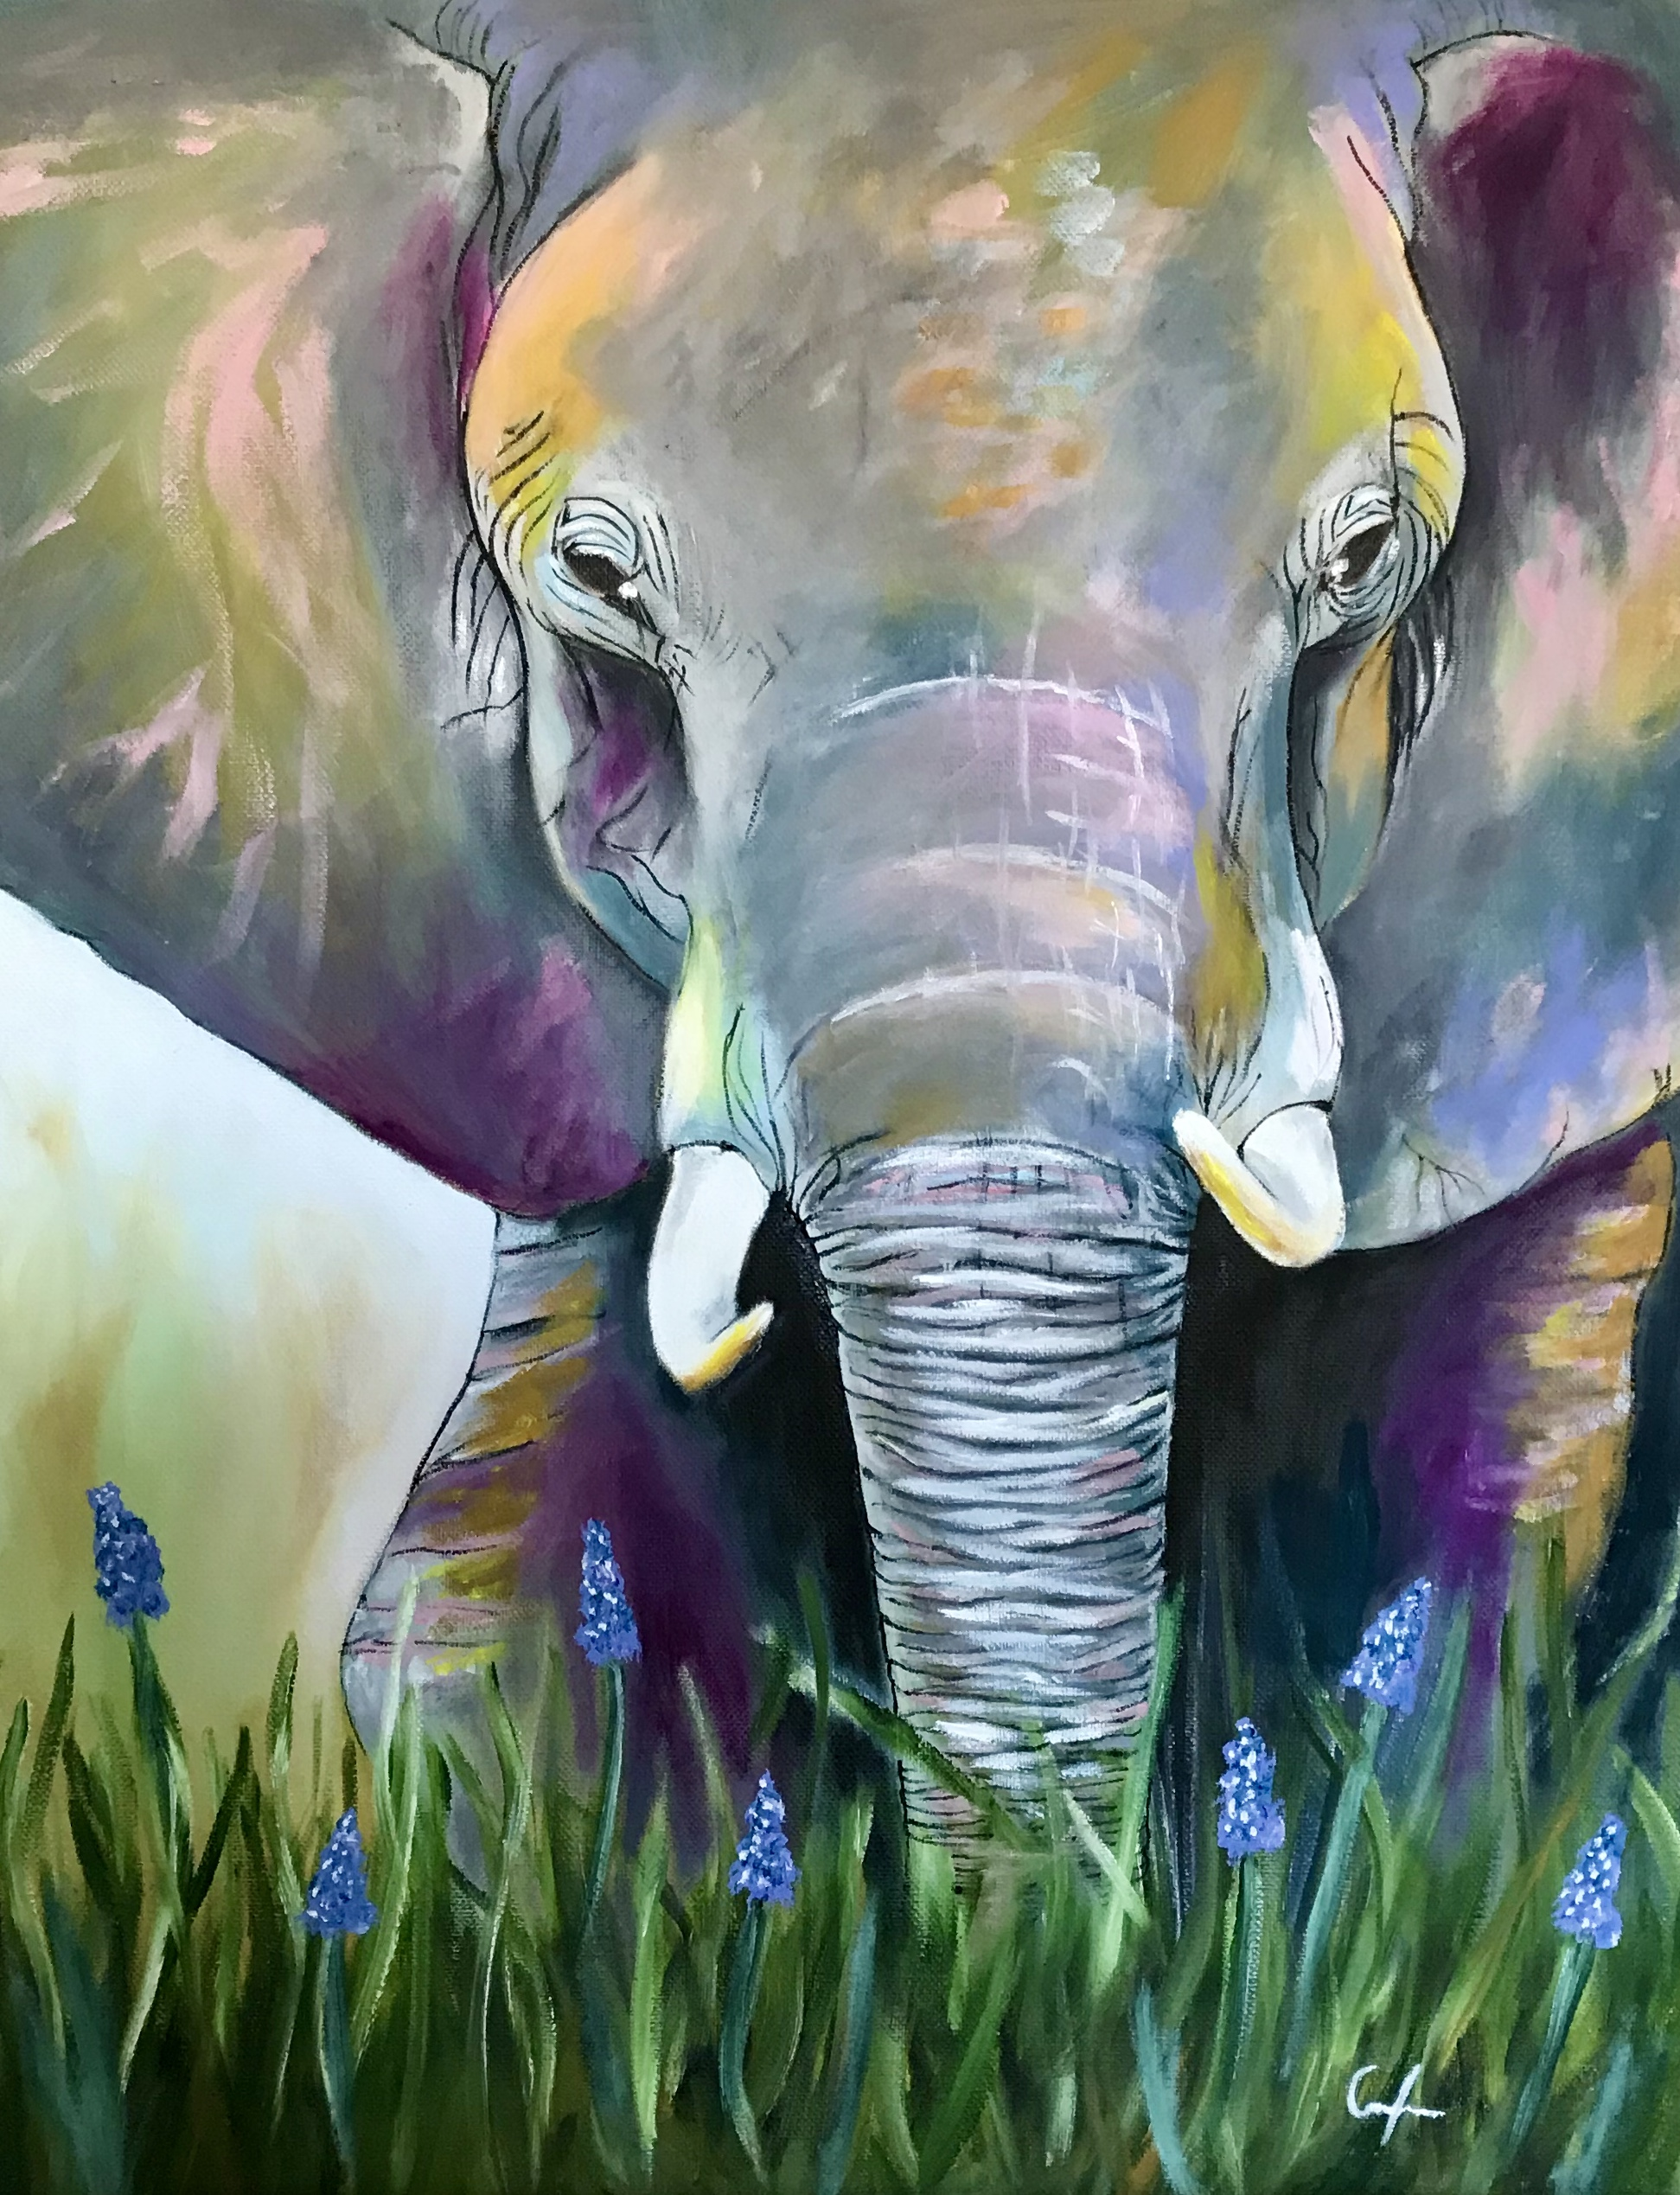 Abstract Elephant Oil Painting // 16 x 20 - 2020